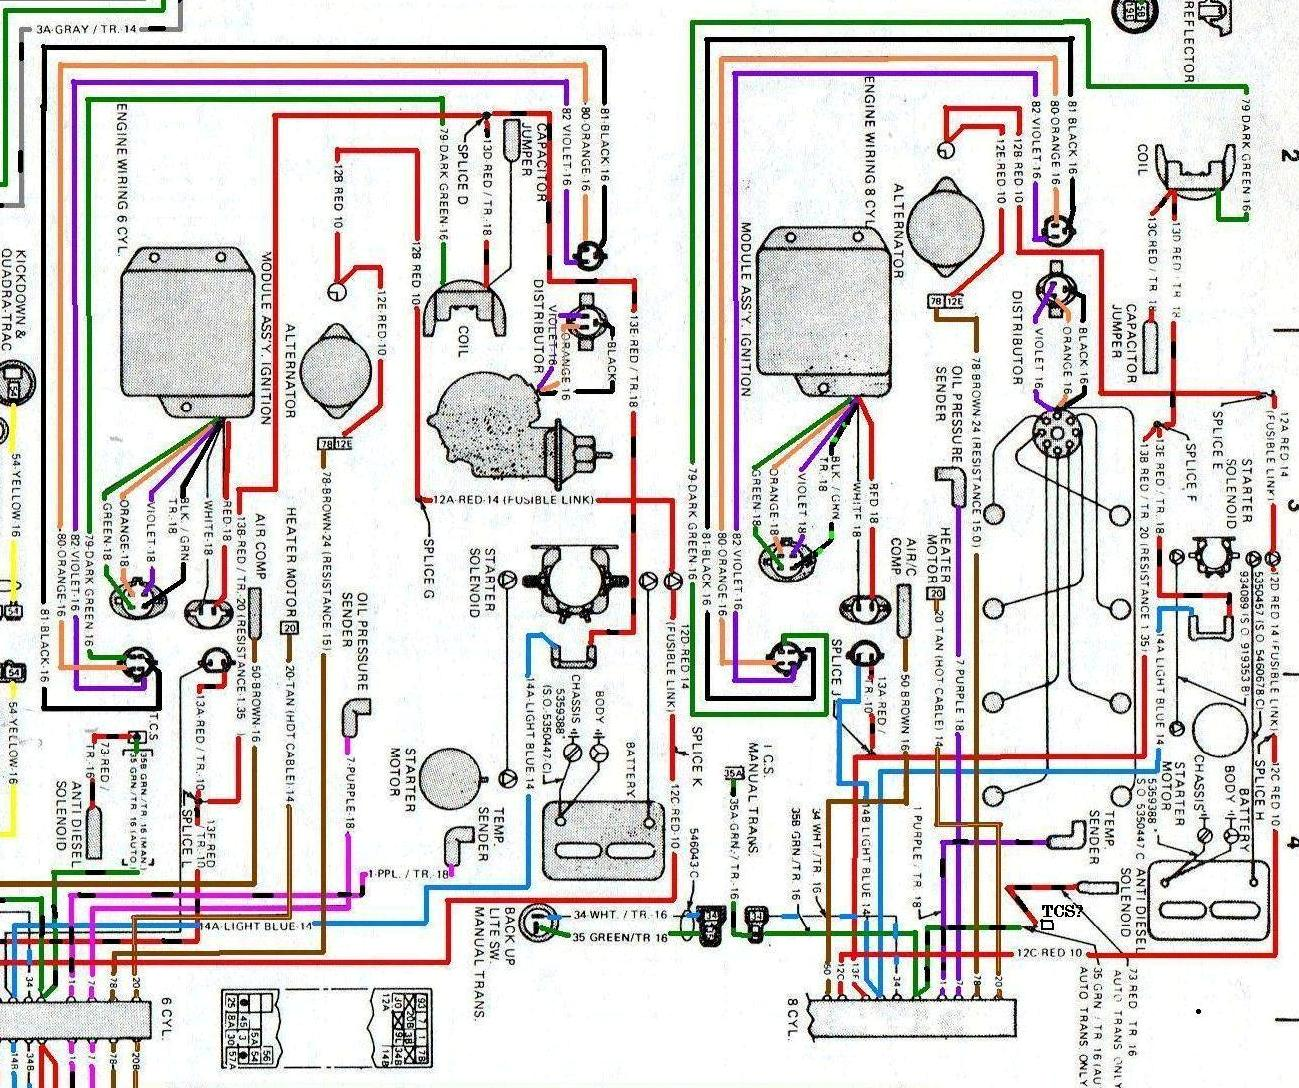 1979 Jeep Cj5 Wiring Diagram In Color - Wiring Diagram •